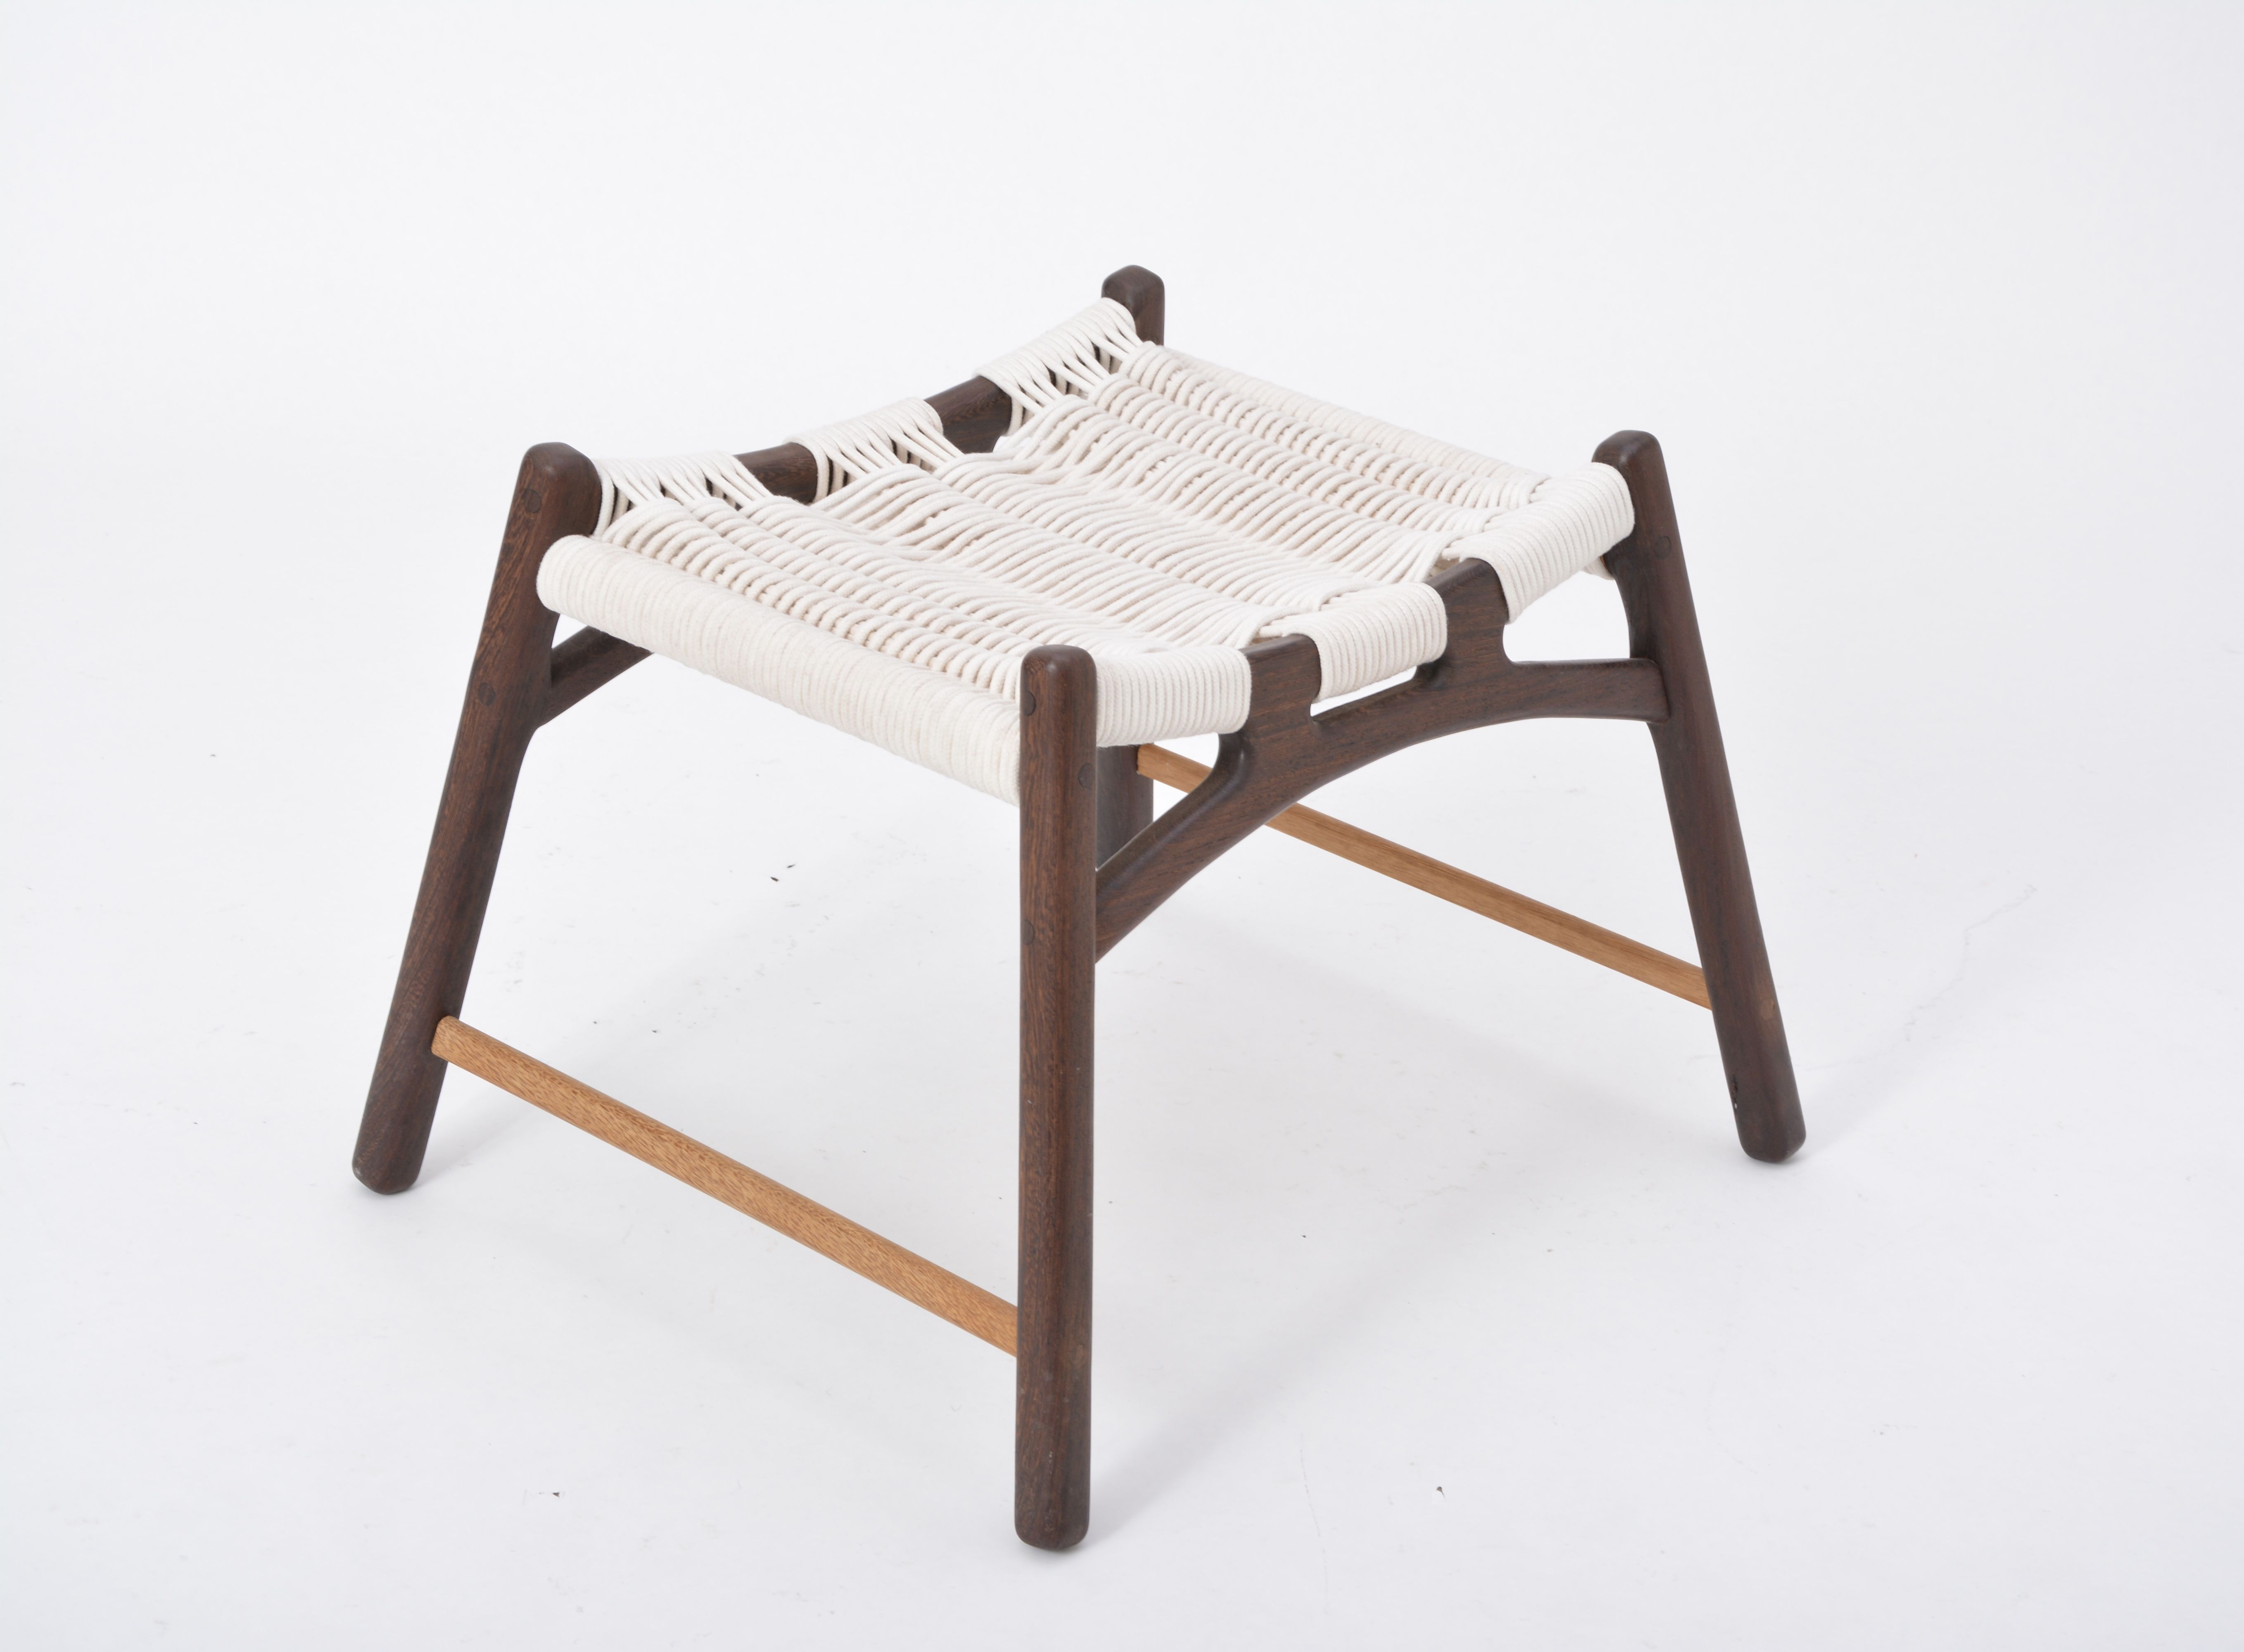 Vintage White Wooden Stool With Woven Seat By Martin GODSK